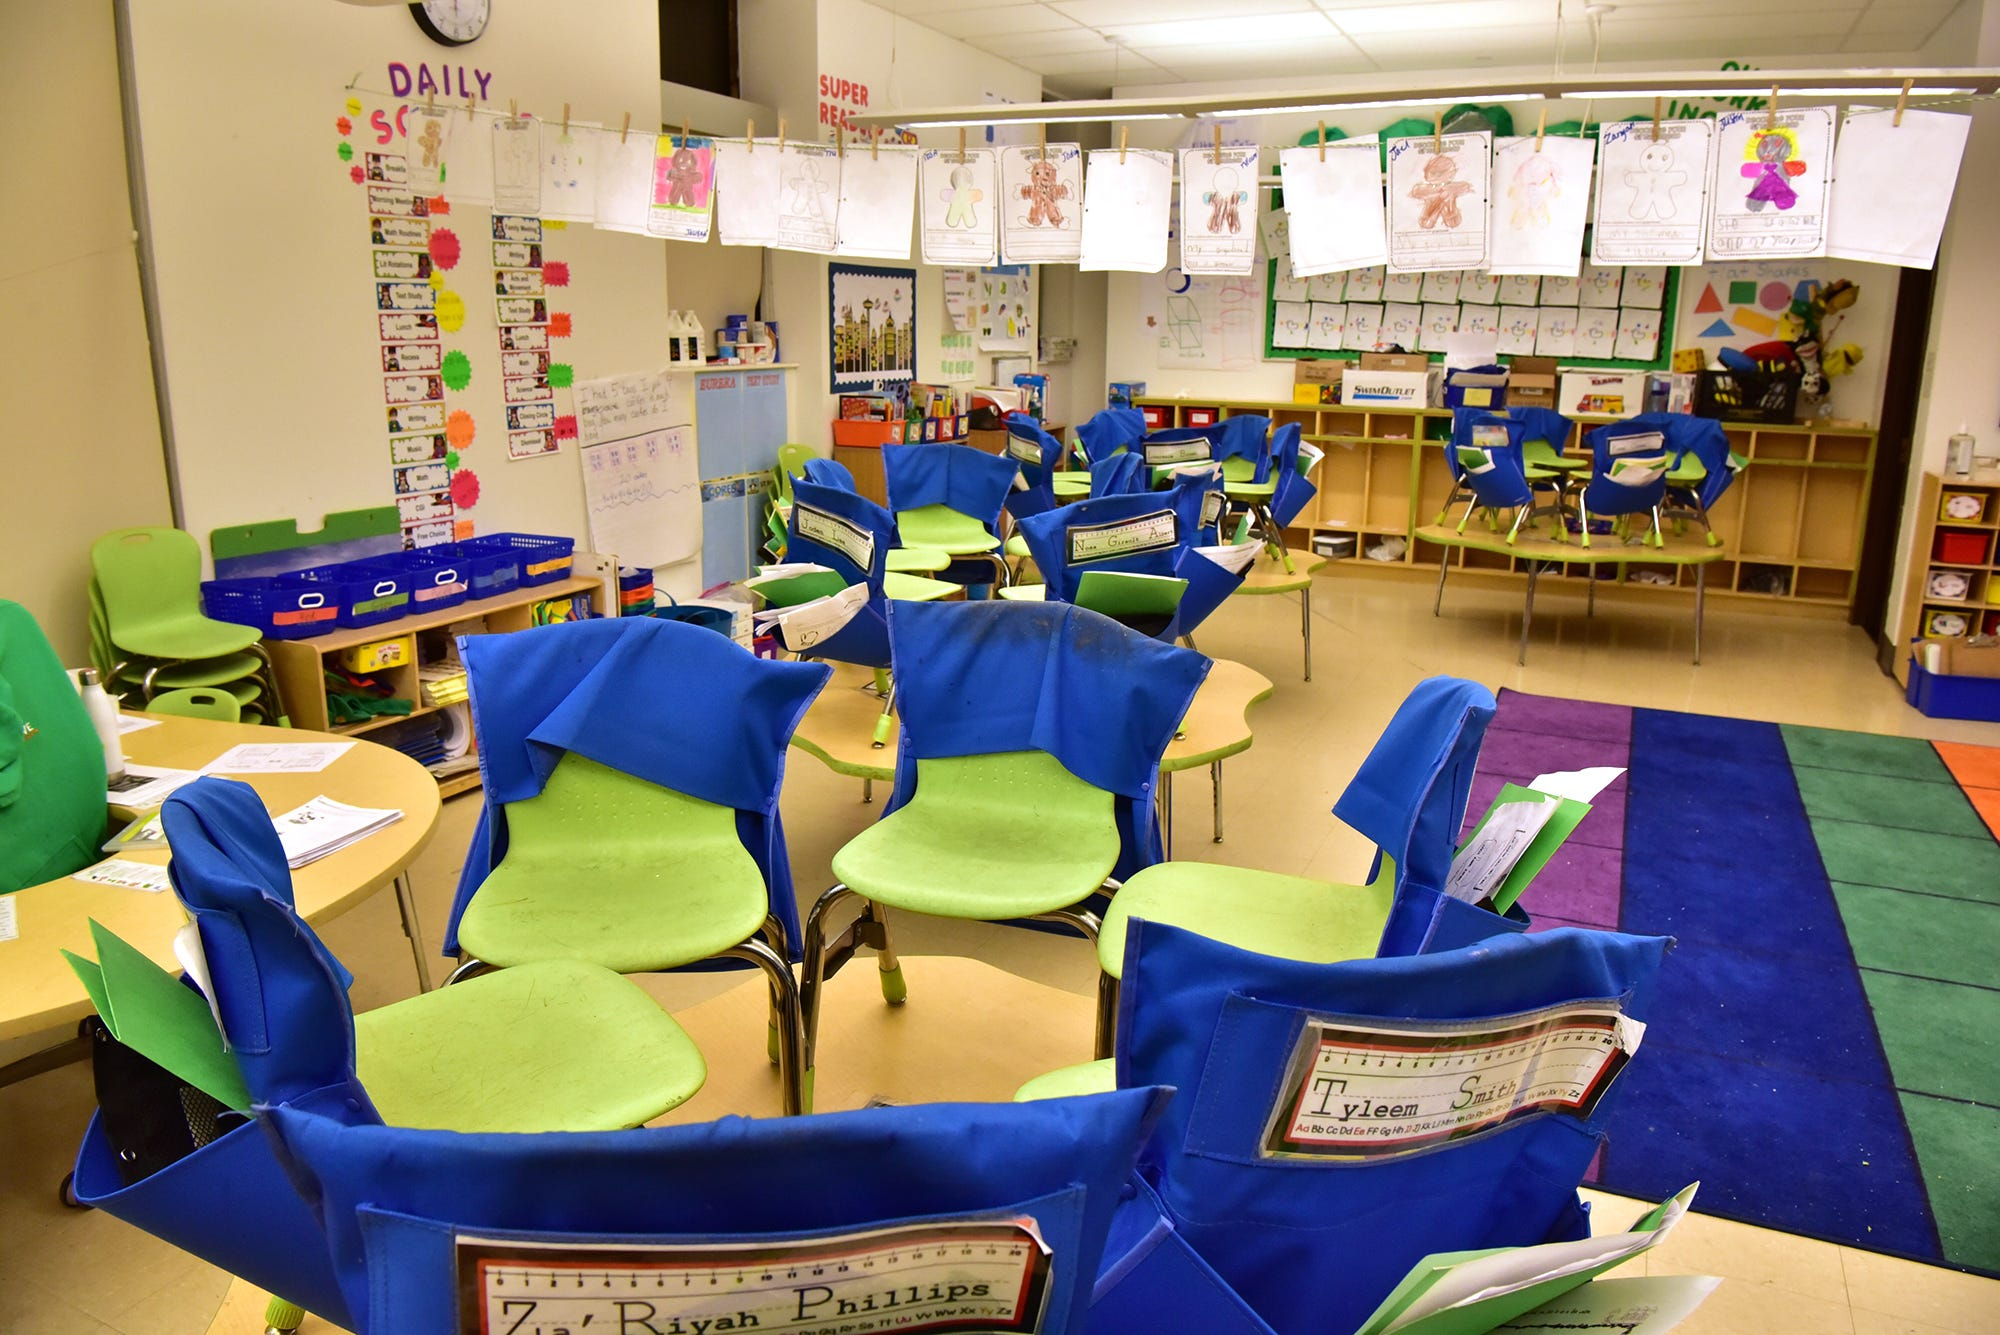 Kindergarten classroom at the 229 18th Avenue Team Academy school in Newark, a building that was renovated for $36 million and is owned by a for-profit charter support group called Pinkhulahoop1 LLC.